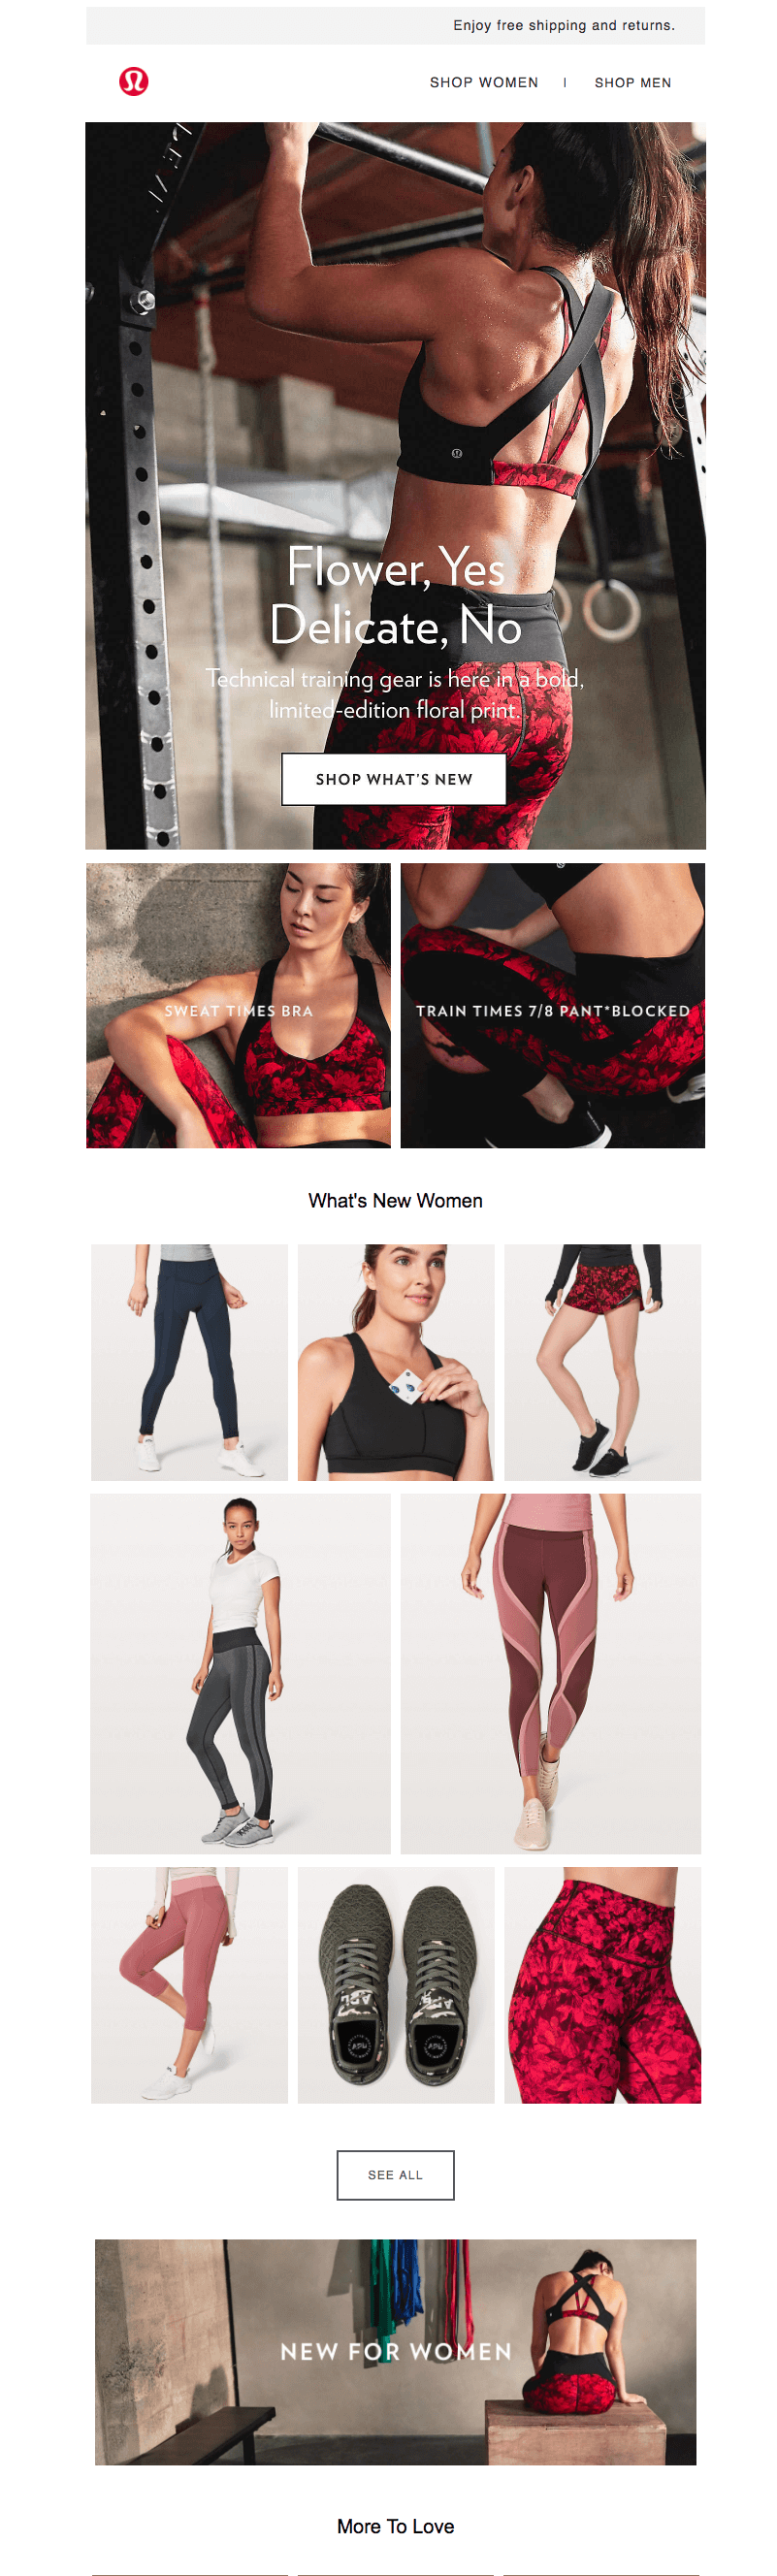 Lululemon fitness brands